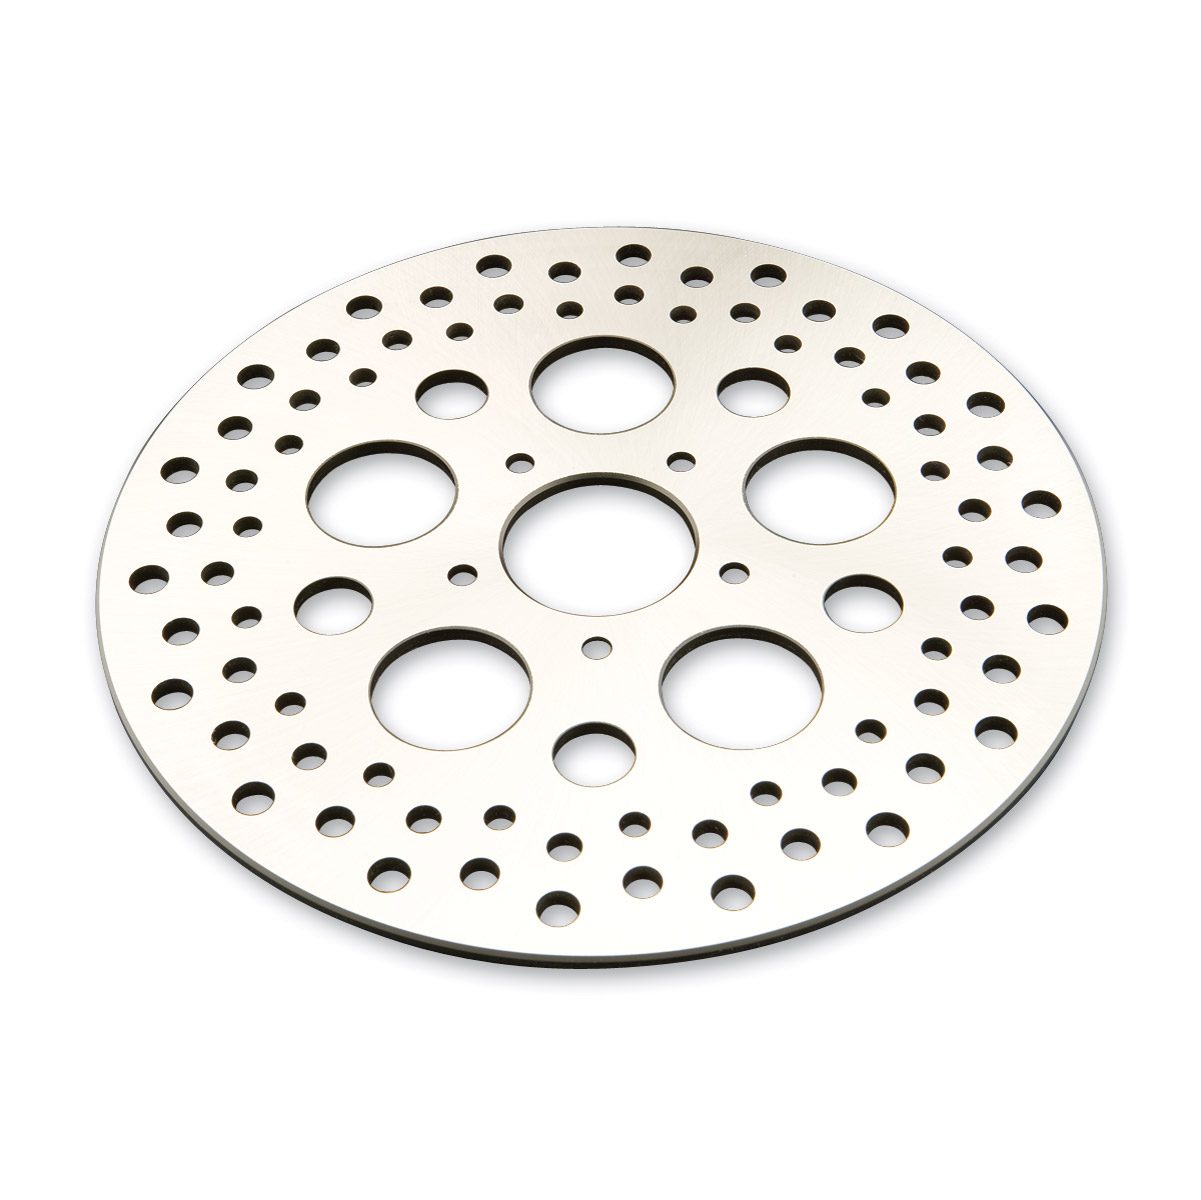 Russell Stainless Steel Front Disc Brake Rotor